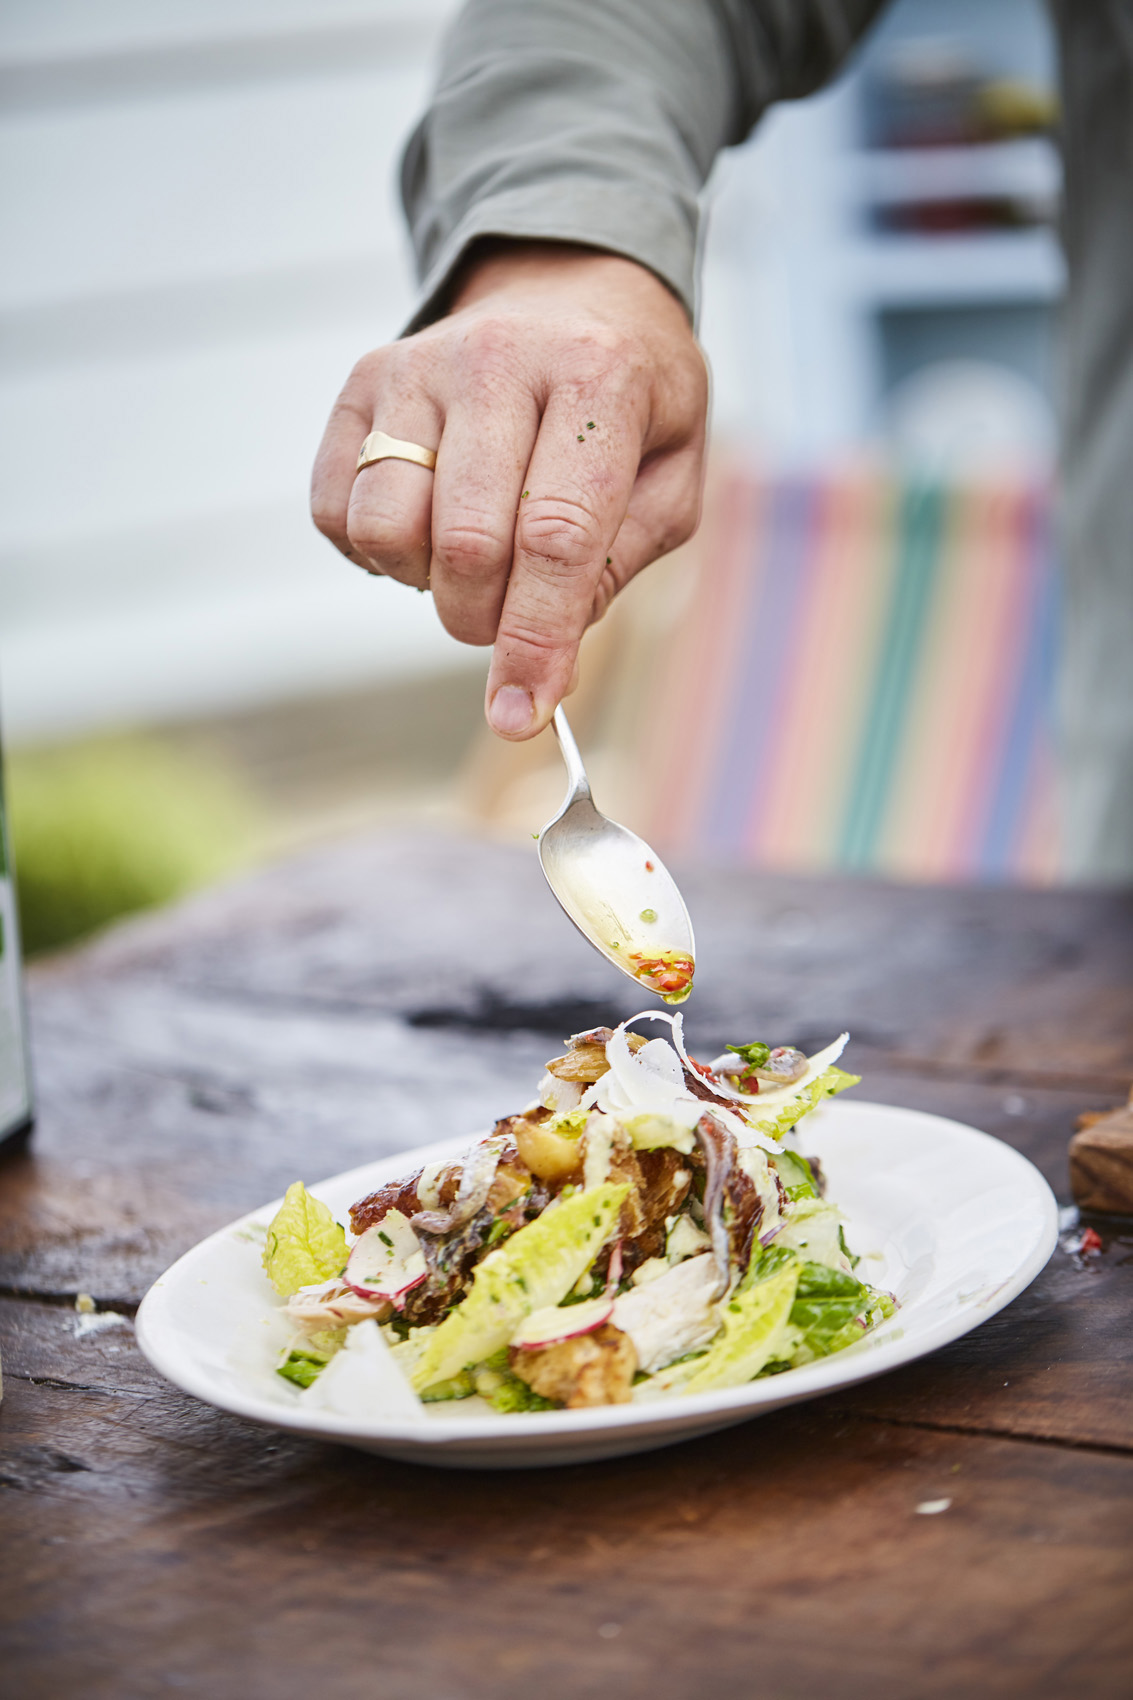 SteveRyan_Photographer_Food_JamieOliver_CeasarSalad_56